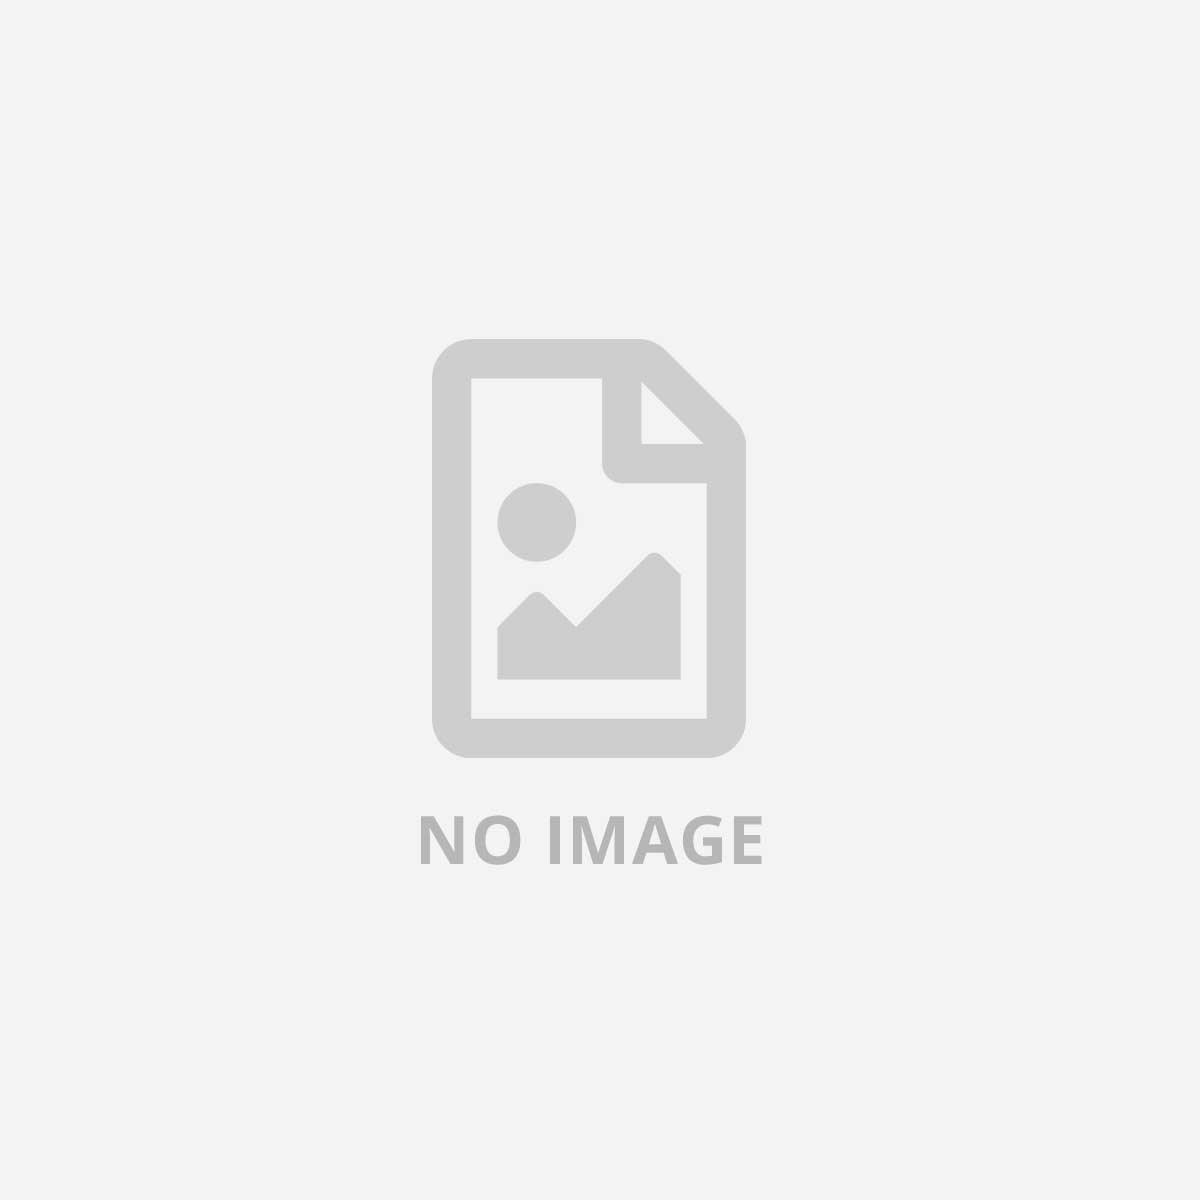 KOCH MEDIA RETRO-BIT SEGA MD 6-BUTTON PAD BLUE